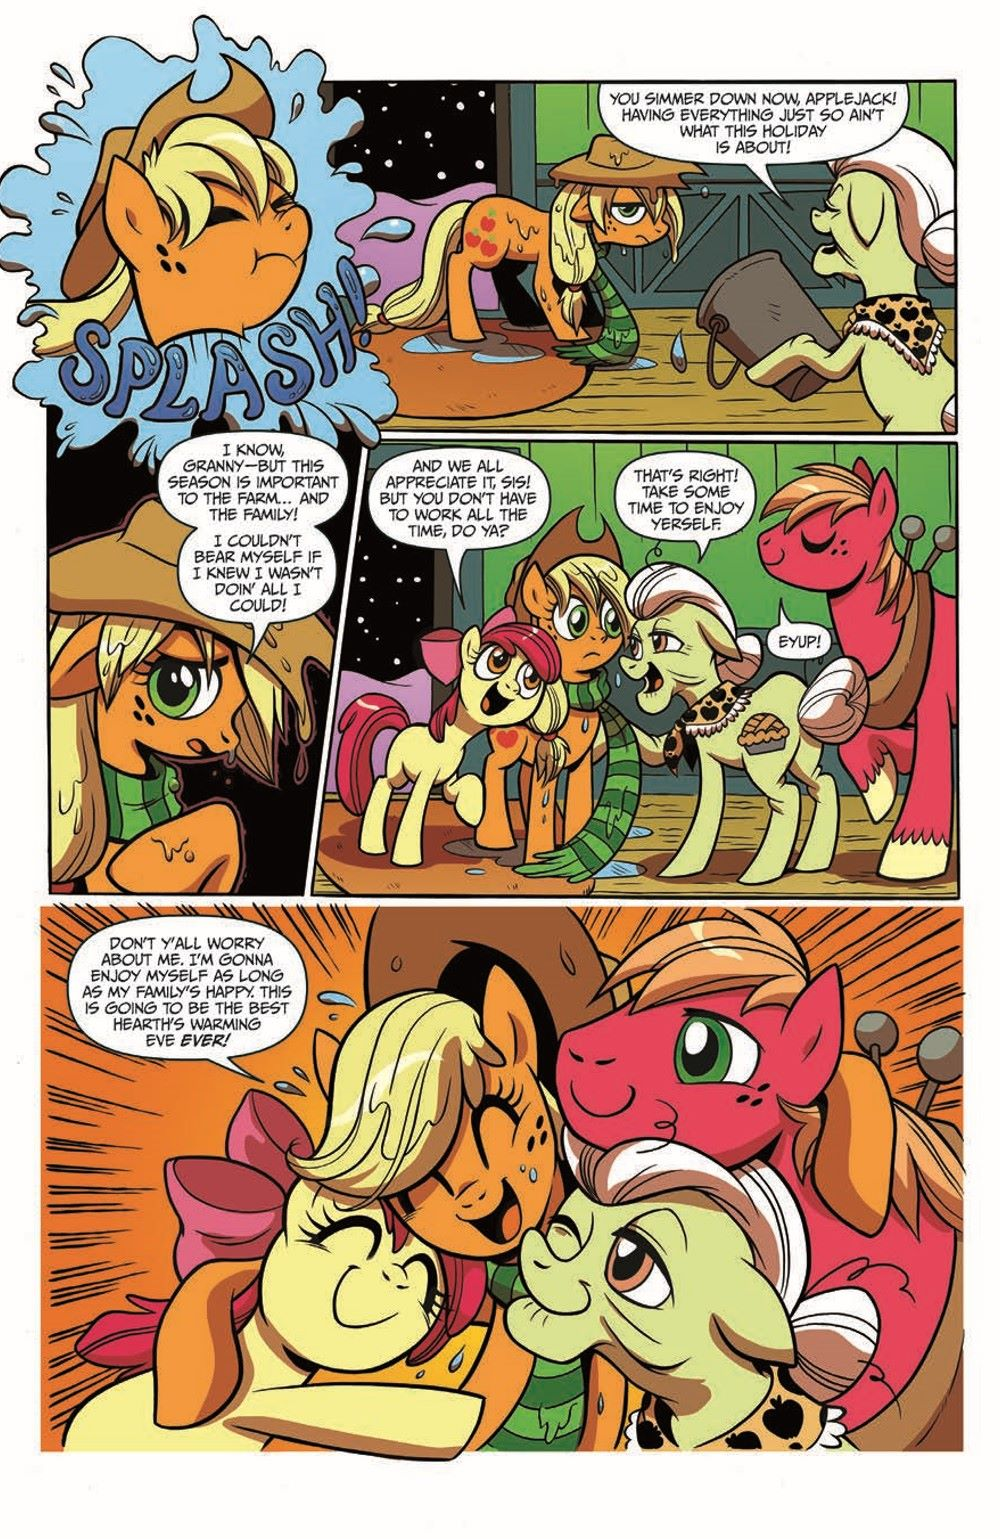 MLP_HolidayMemories_pr-5 ComicList Previews: MY LITTLE PONY HOLIDAY MEMORIES TP